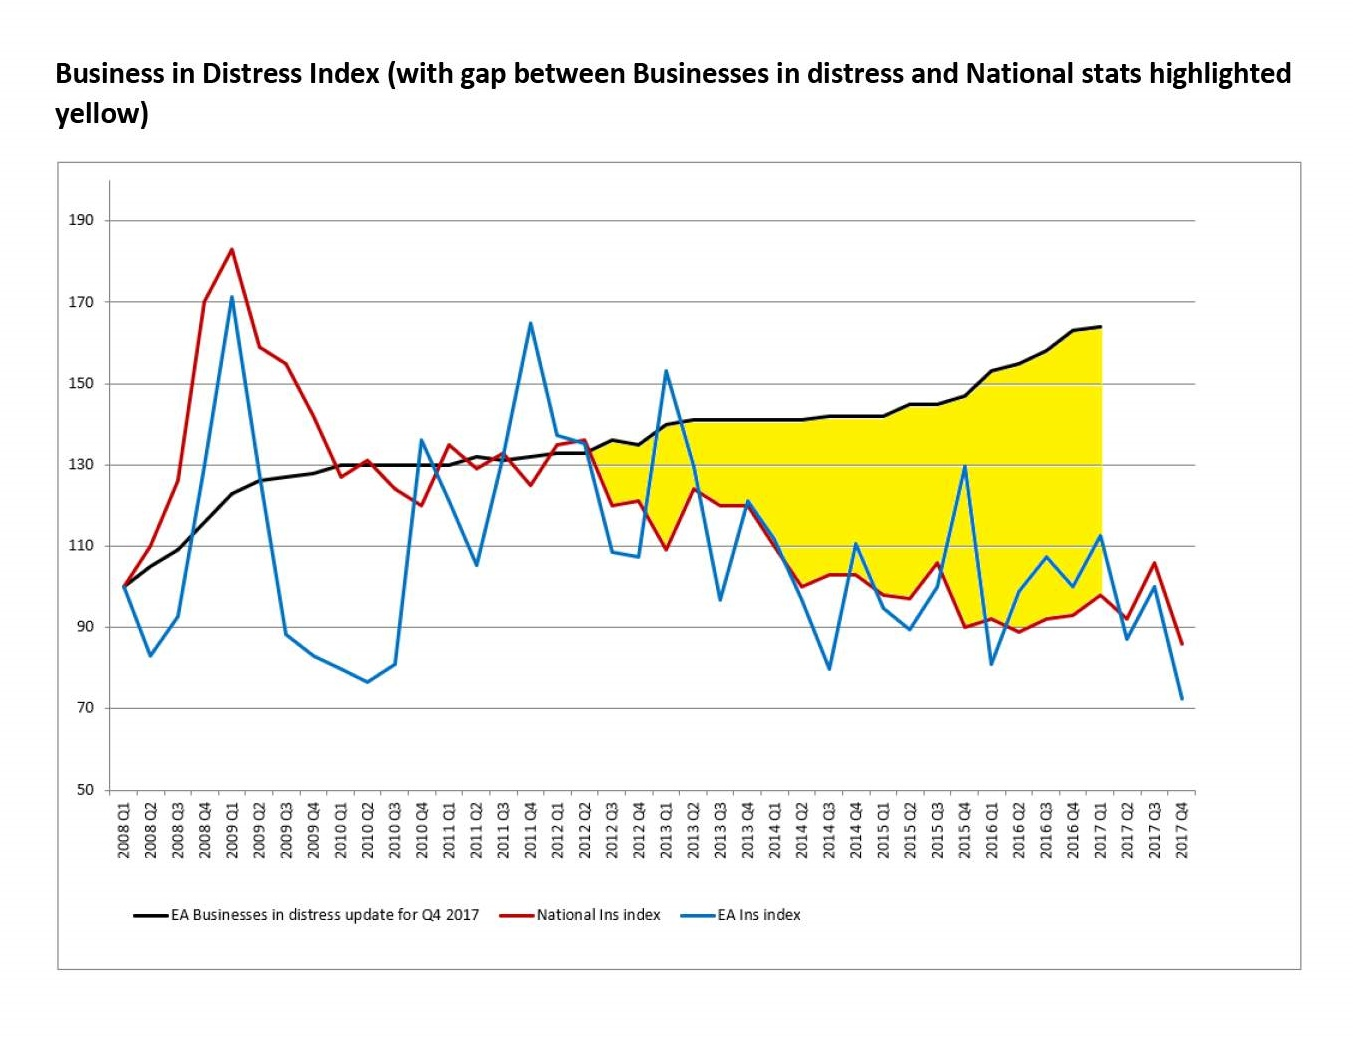 McTear Williams & Wood business distress index for Q3 2017